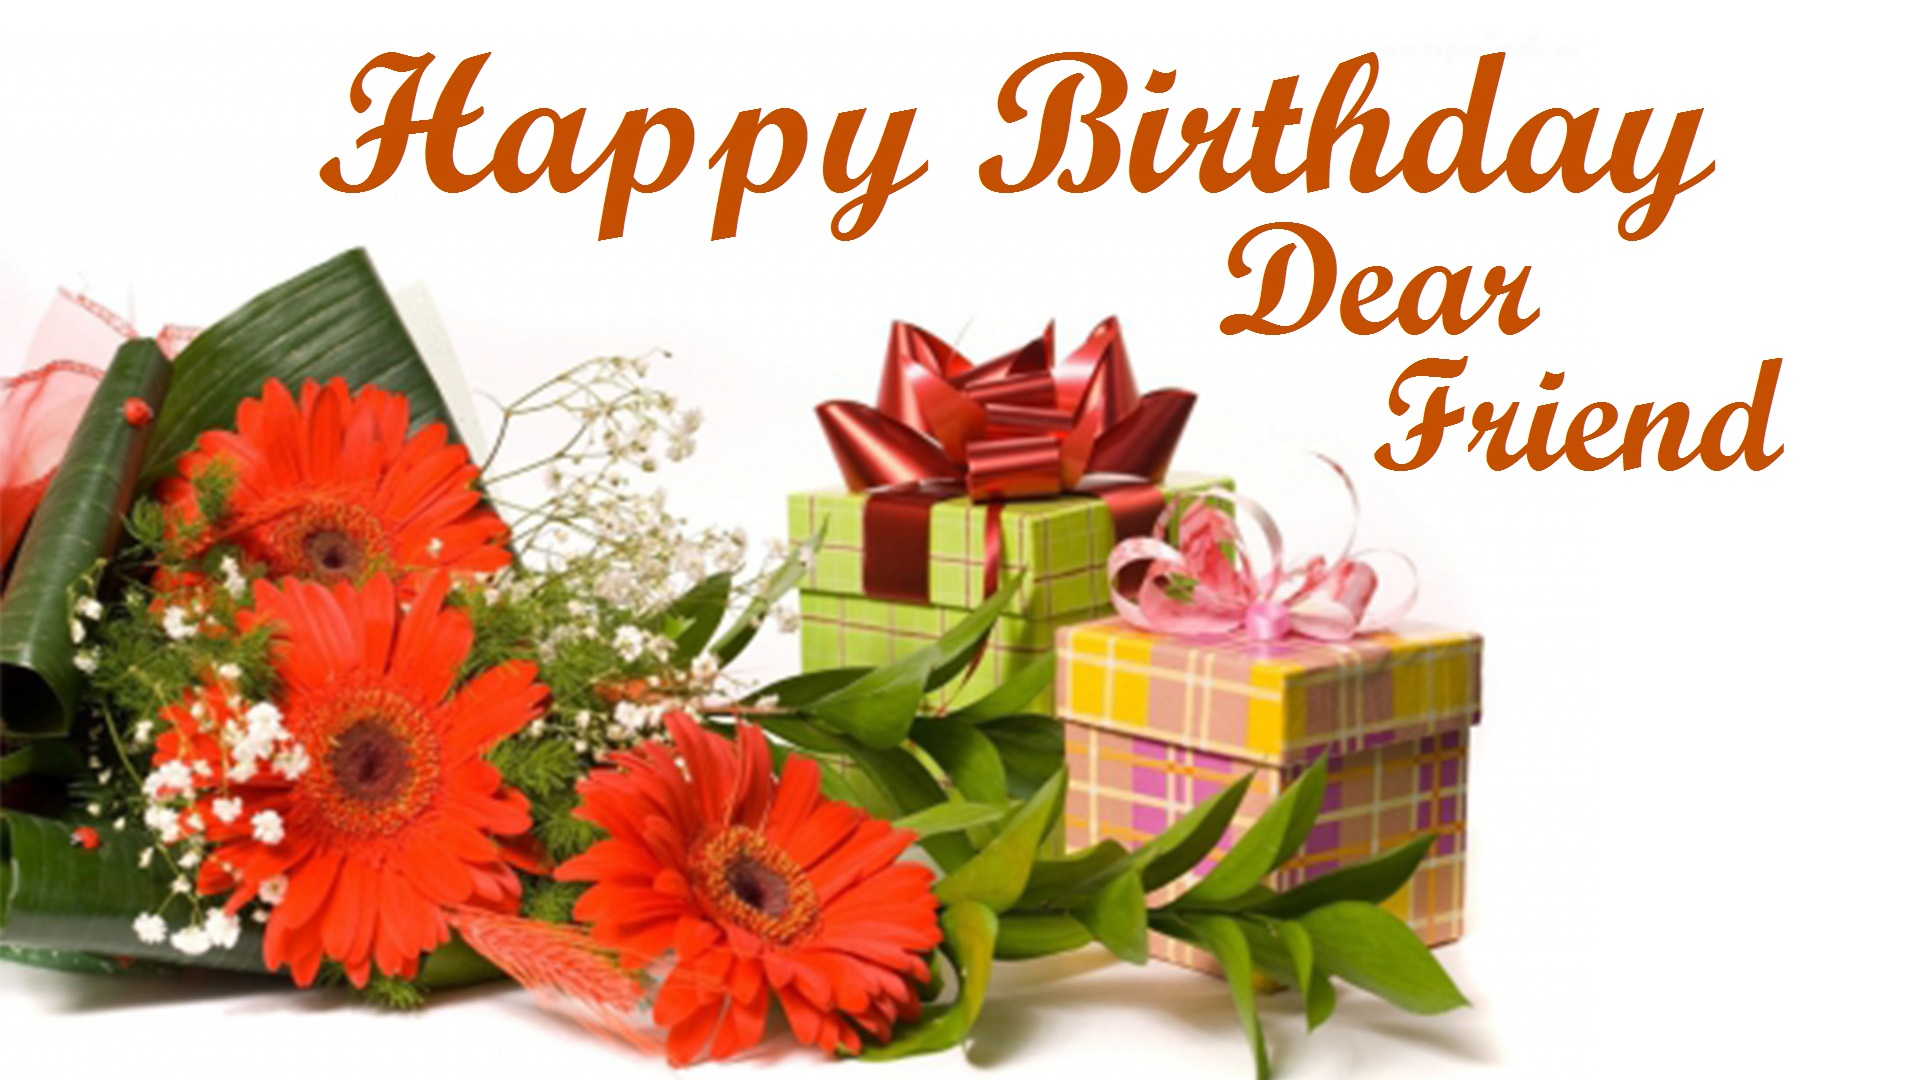 Happy Birthday Dear Friend Images Hd Pictures Free Download